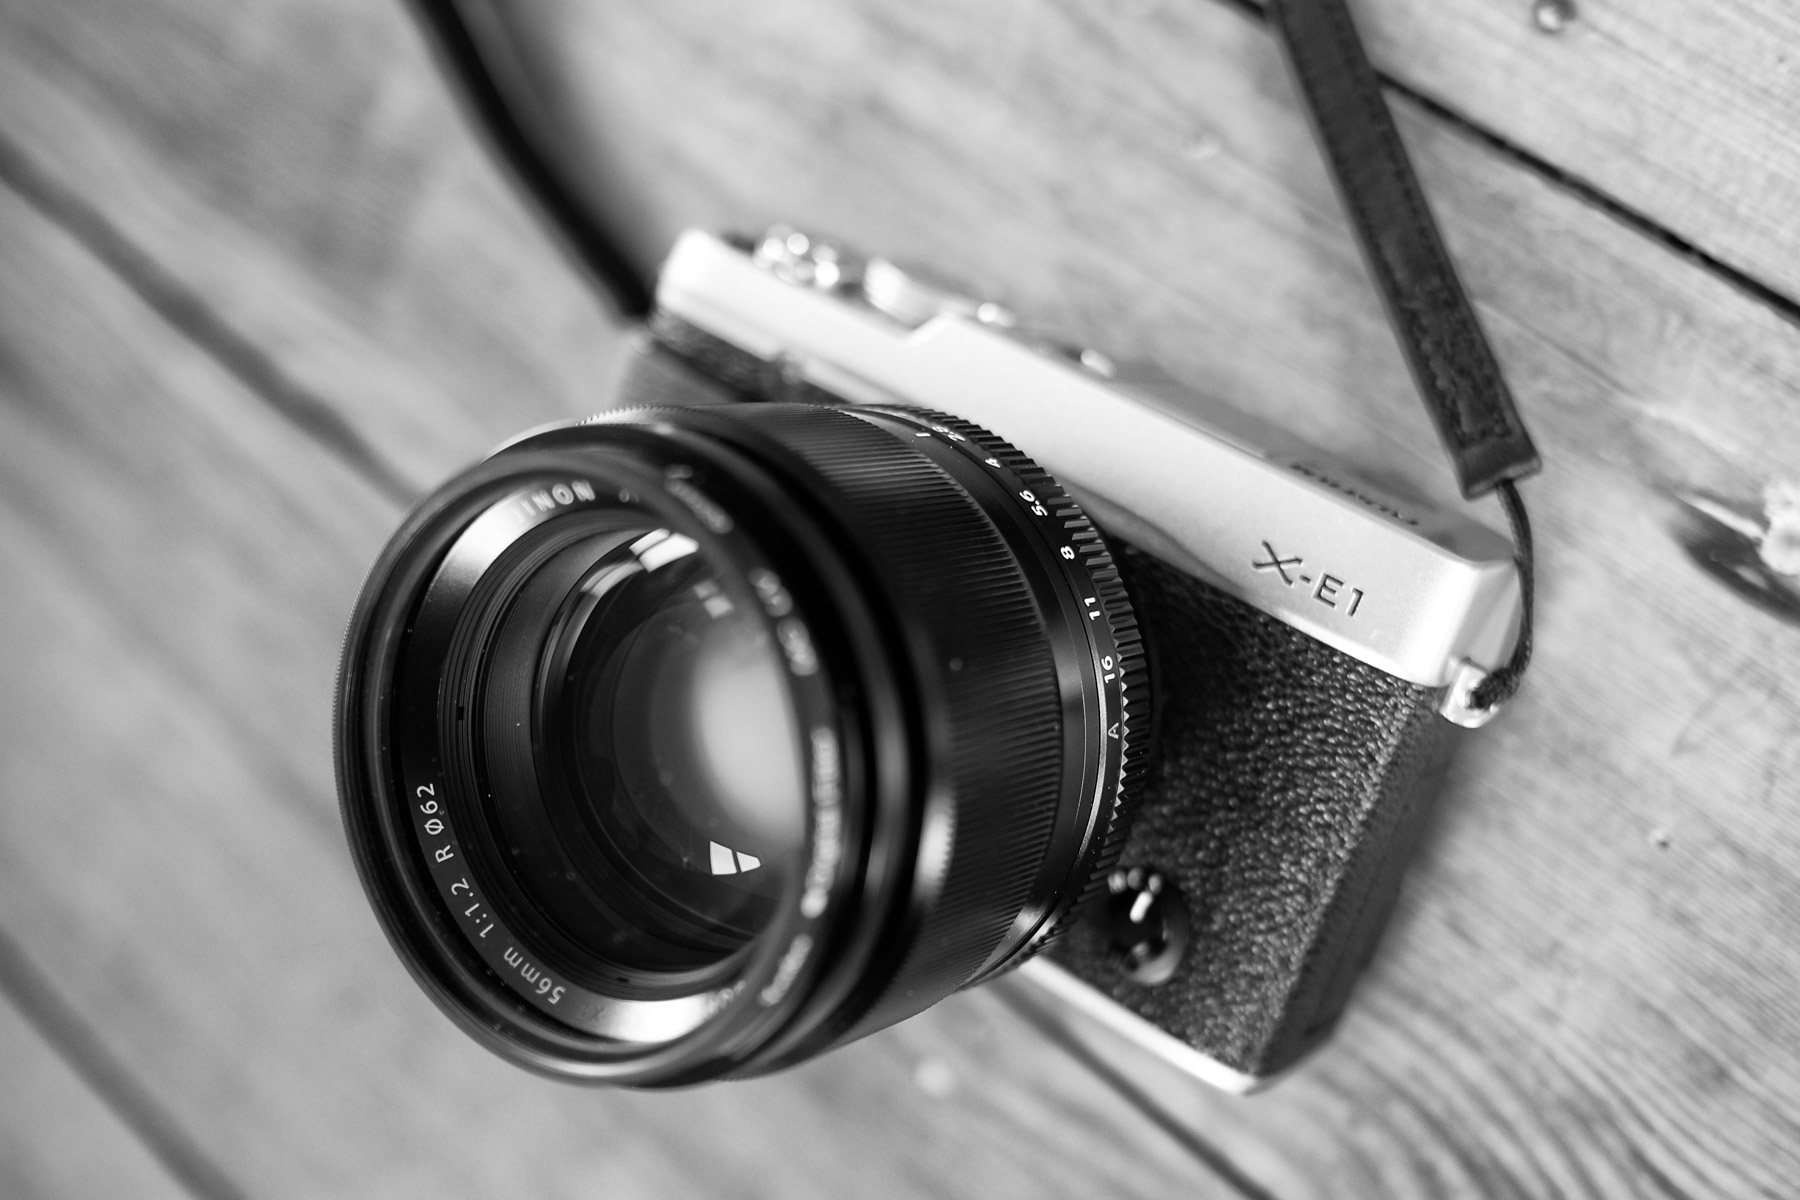 Fuji X-E1 with XF56mm F/1.2 lens